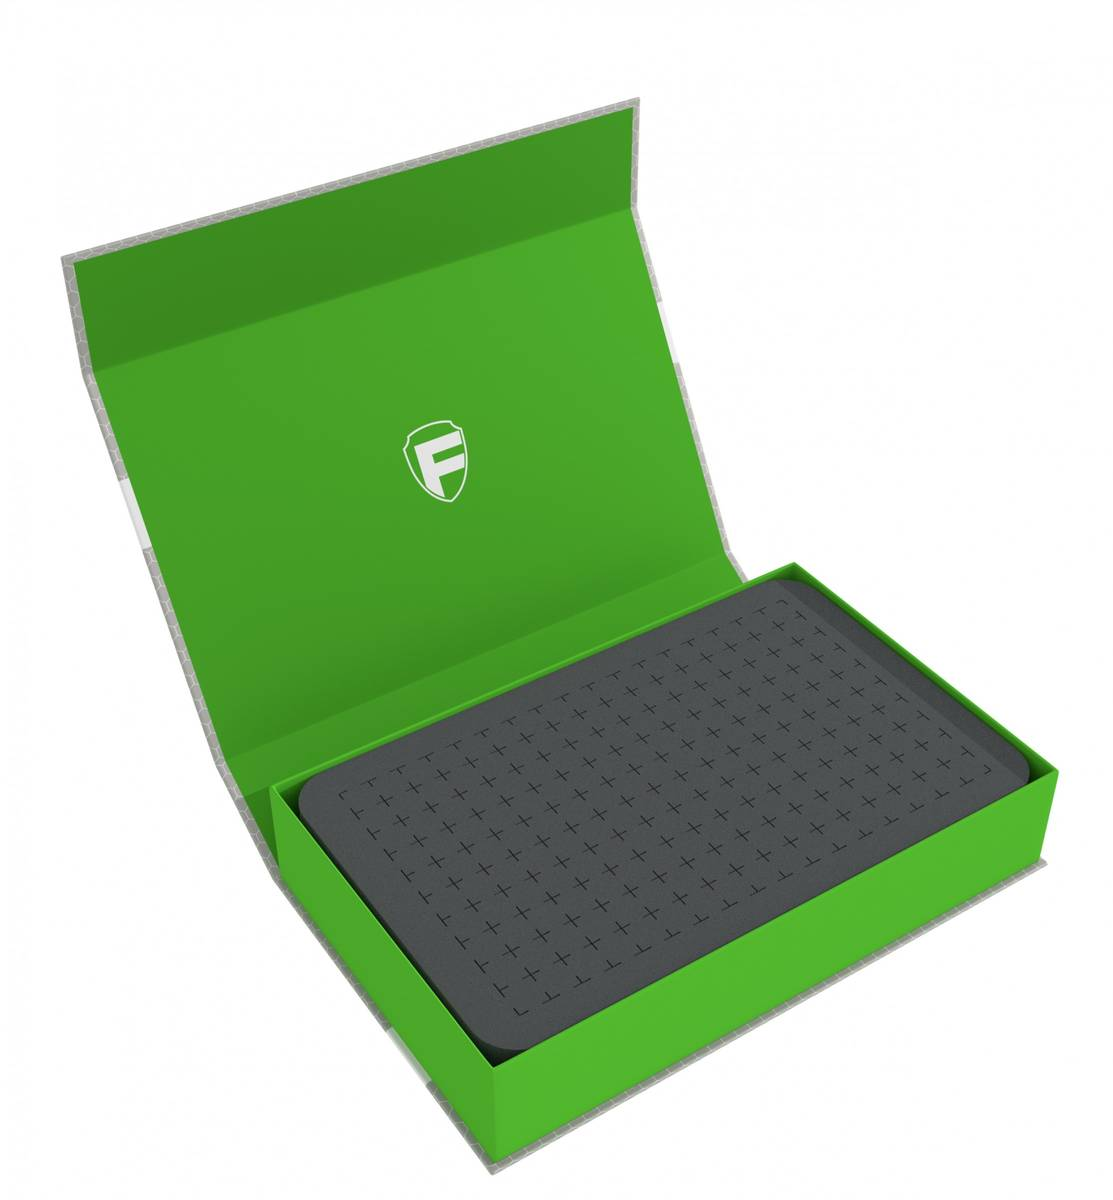 Feldherr Magnetic Box green with 40 mm pick and pluck foam for custom projects